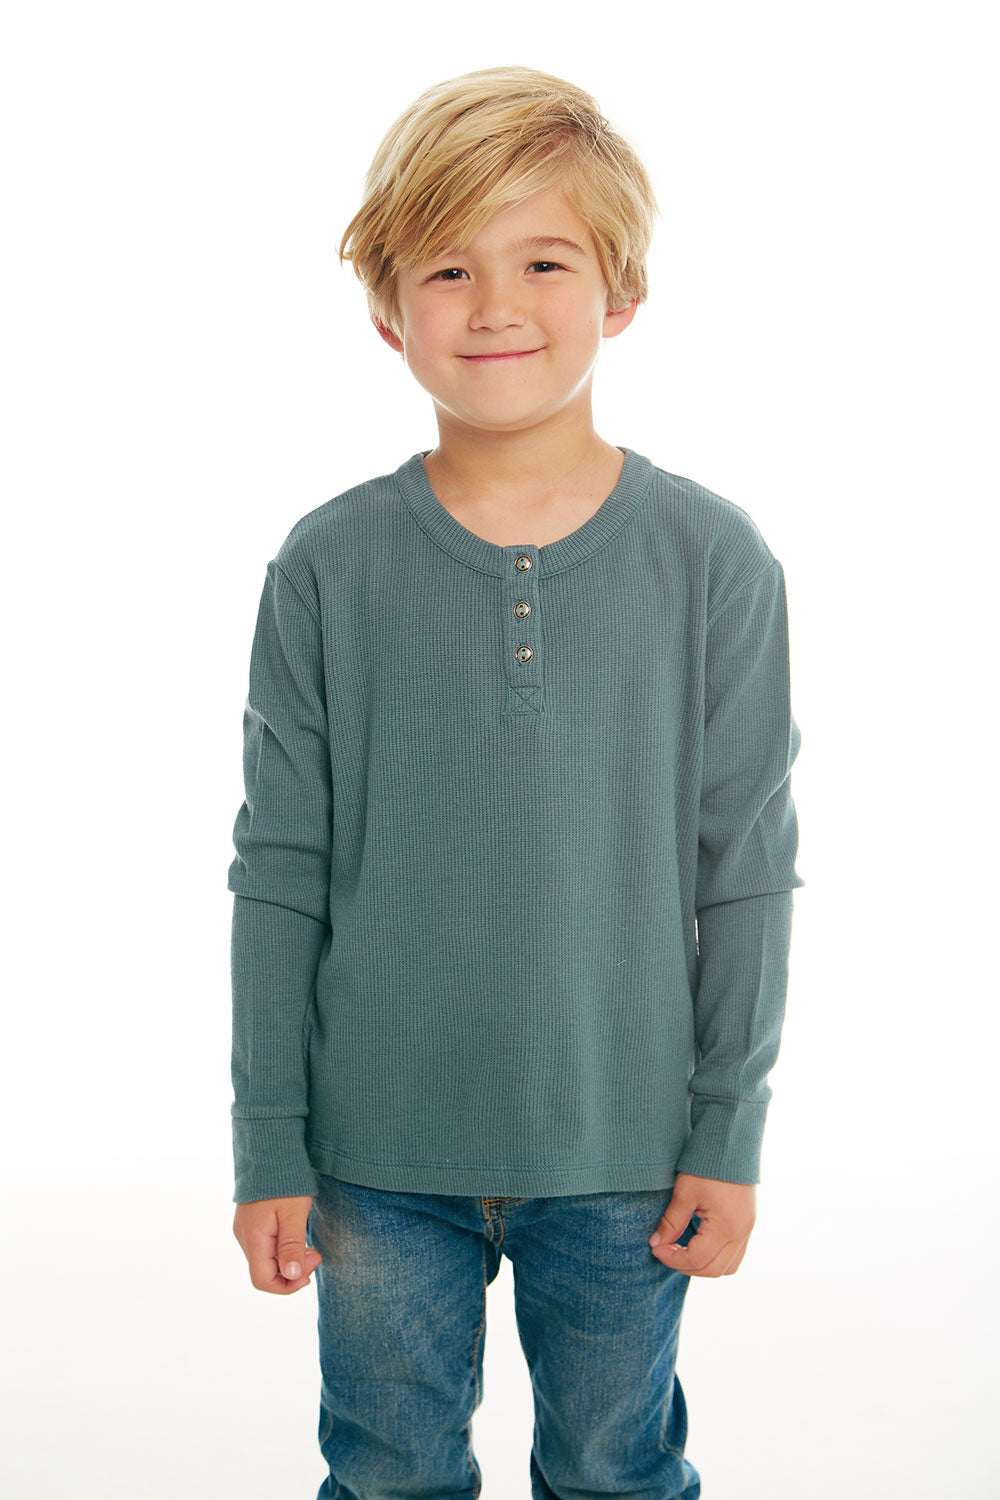 Boys Thermal Long Sleeve Henley BOYS chaserbrand4.myshopify.com